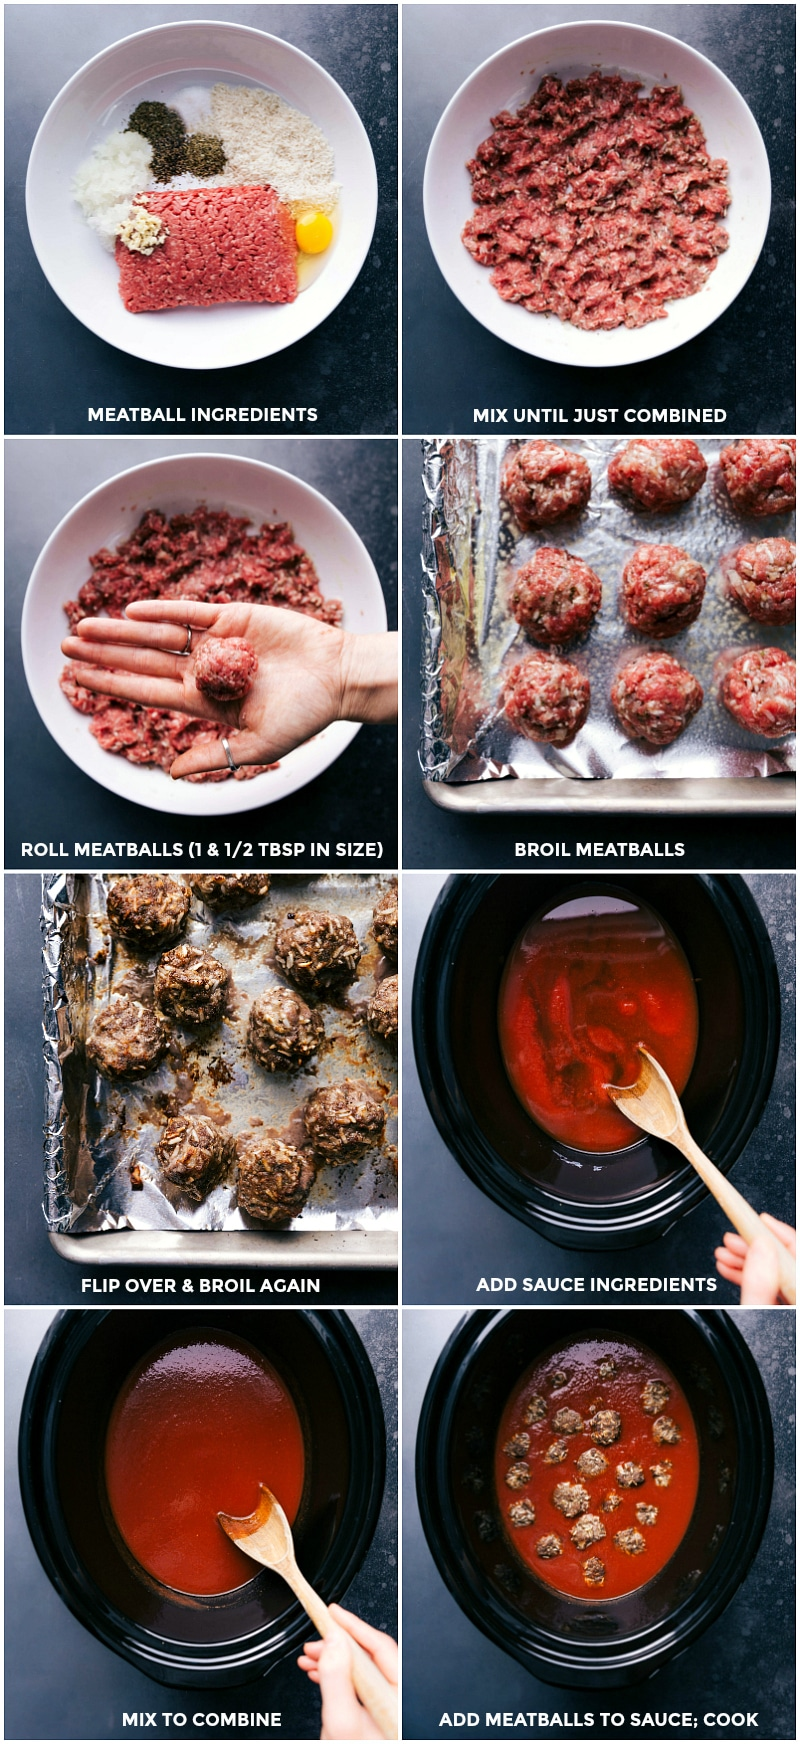 Process shots-- images of the meatballs being made and broiled; then added to the slow cooker.